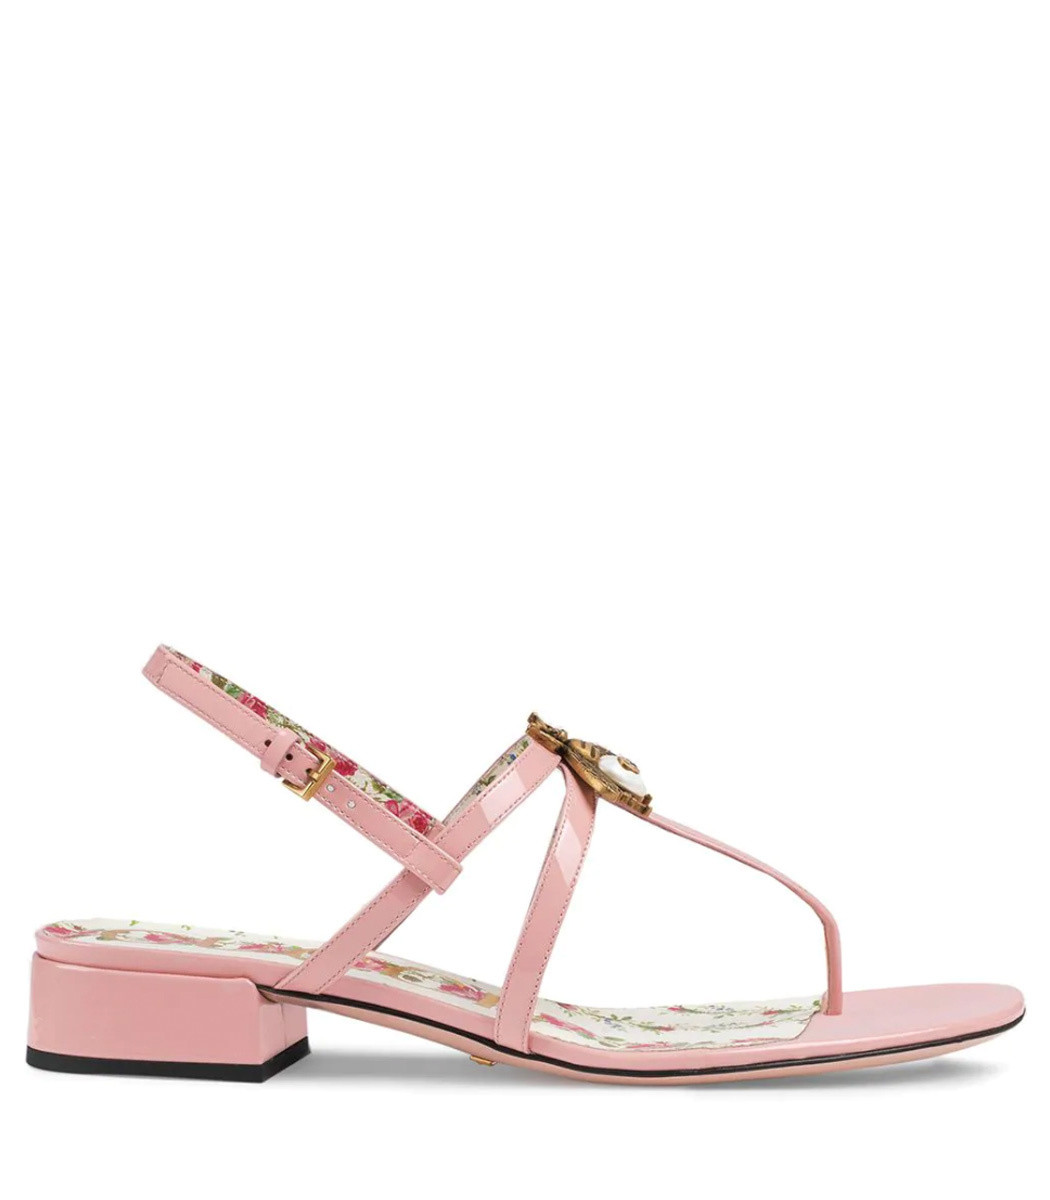 ba9a888765ca1b Gucci Bee Patent Leather Sandals - Light Pink Adjustable Strap Sandals